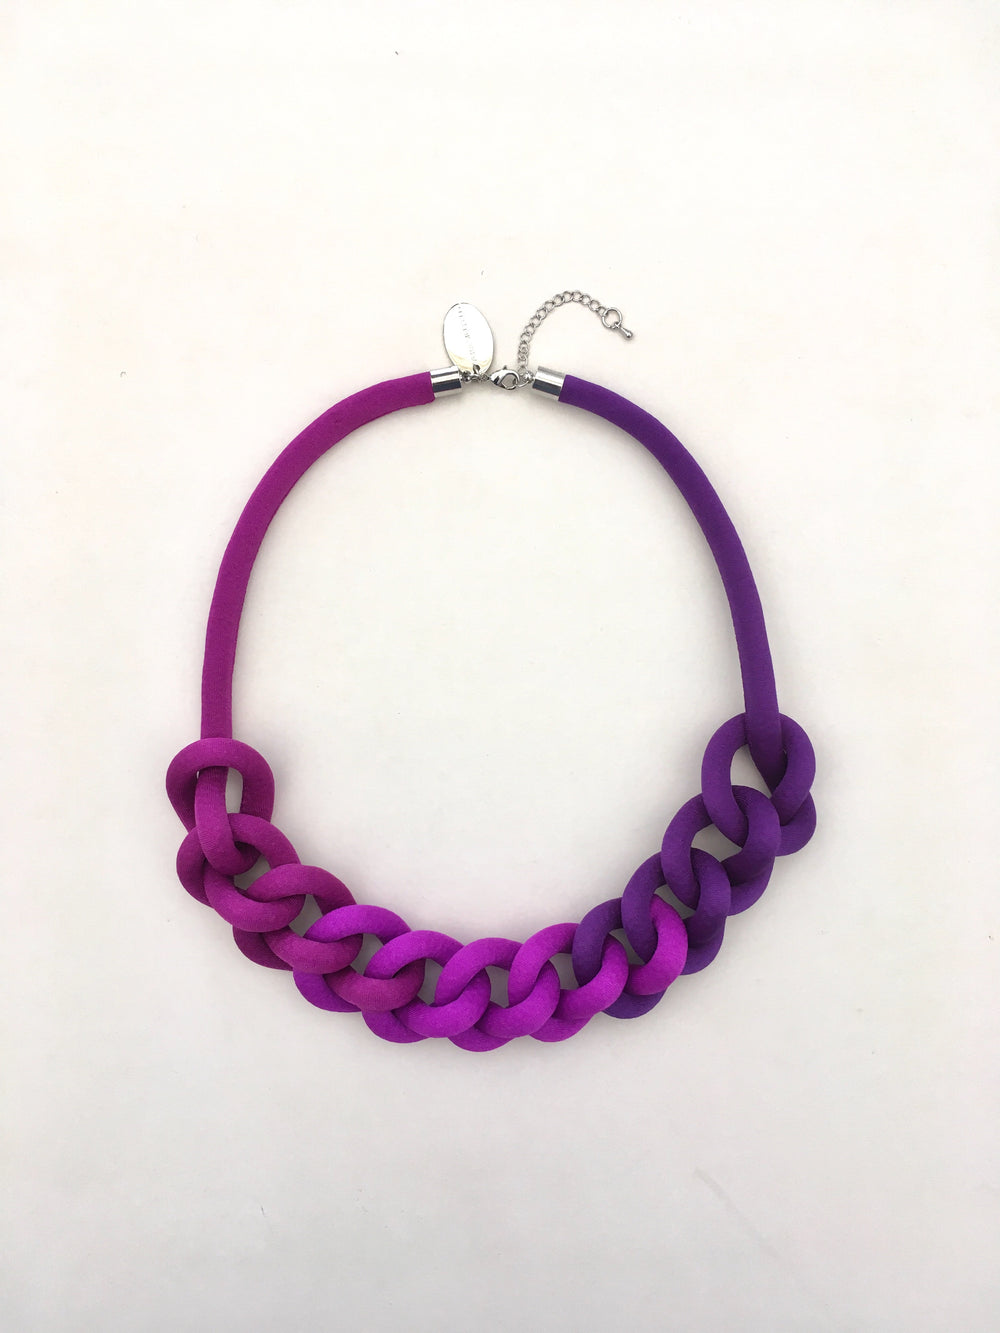 COLLAR CADENA degradé morado